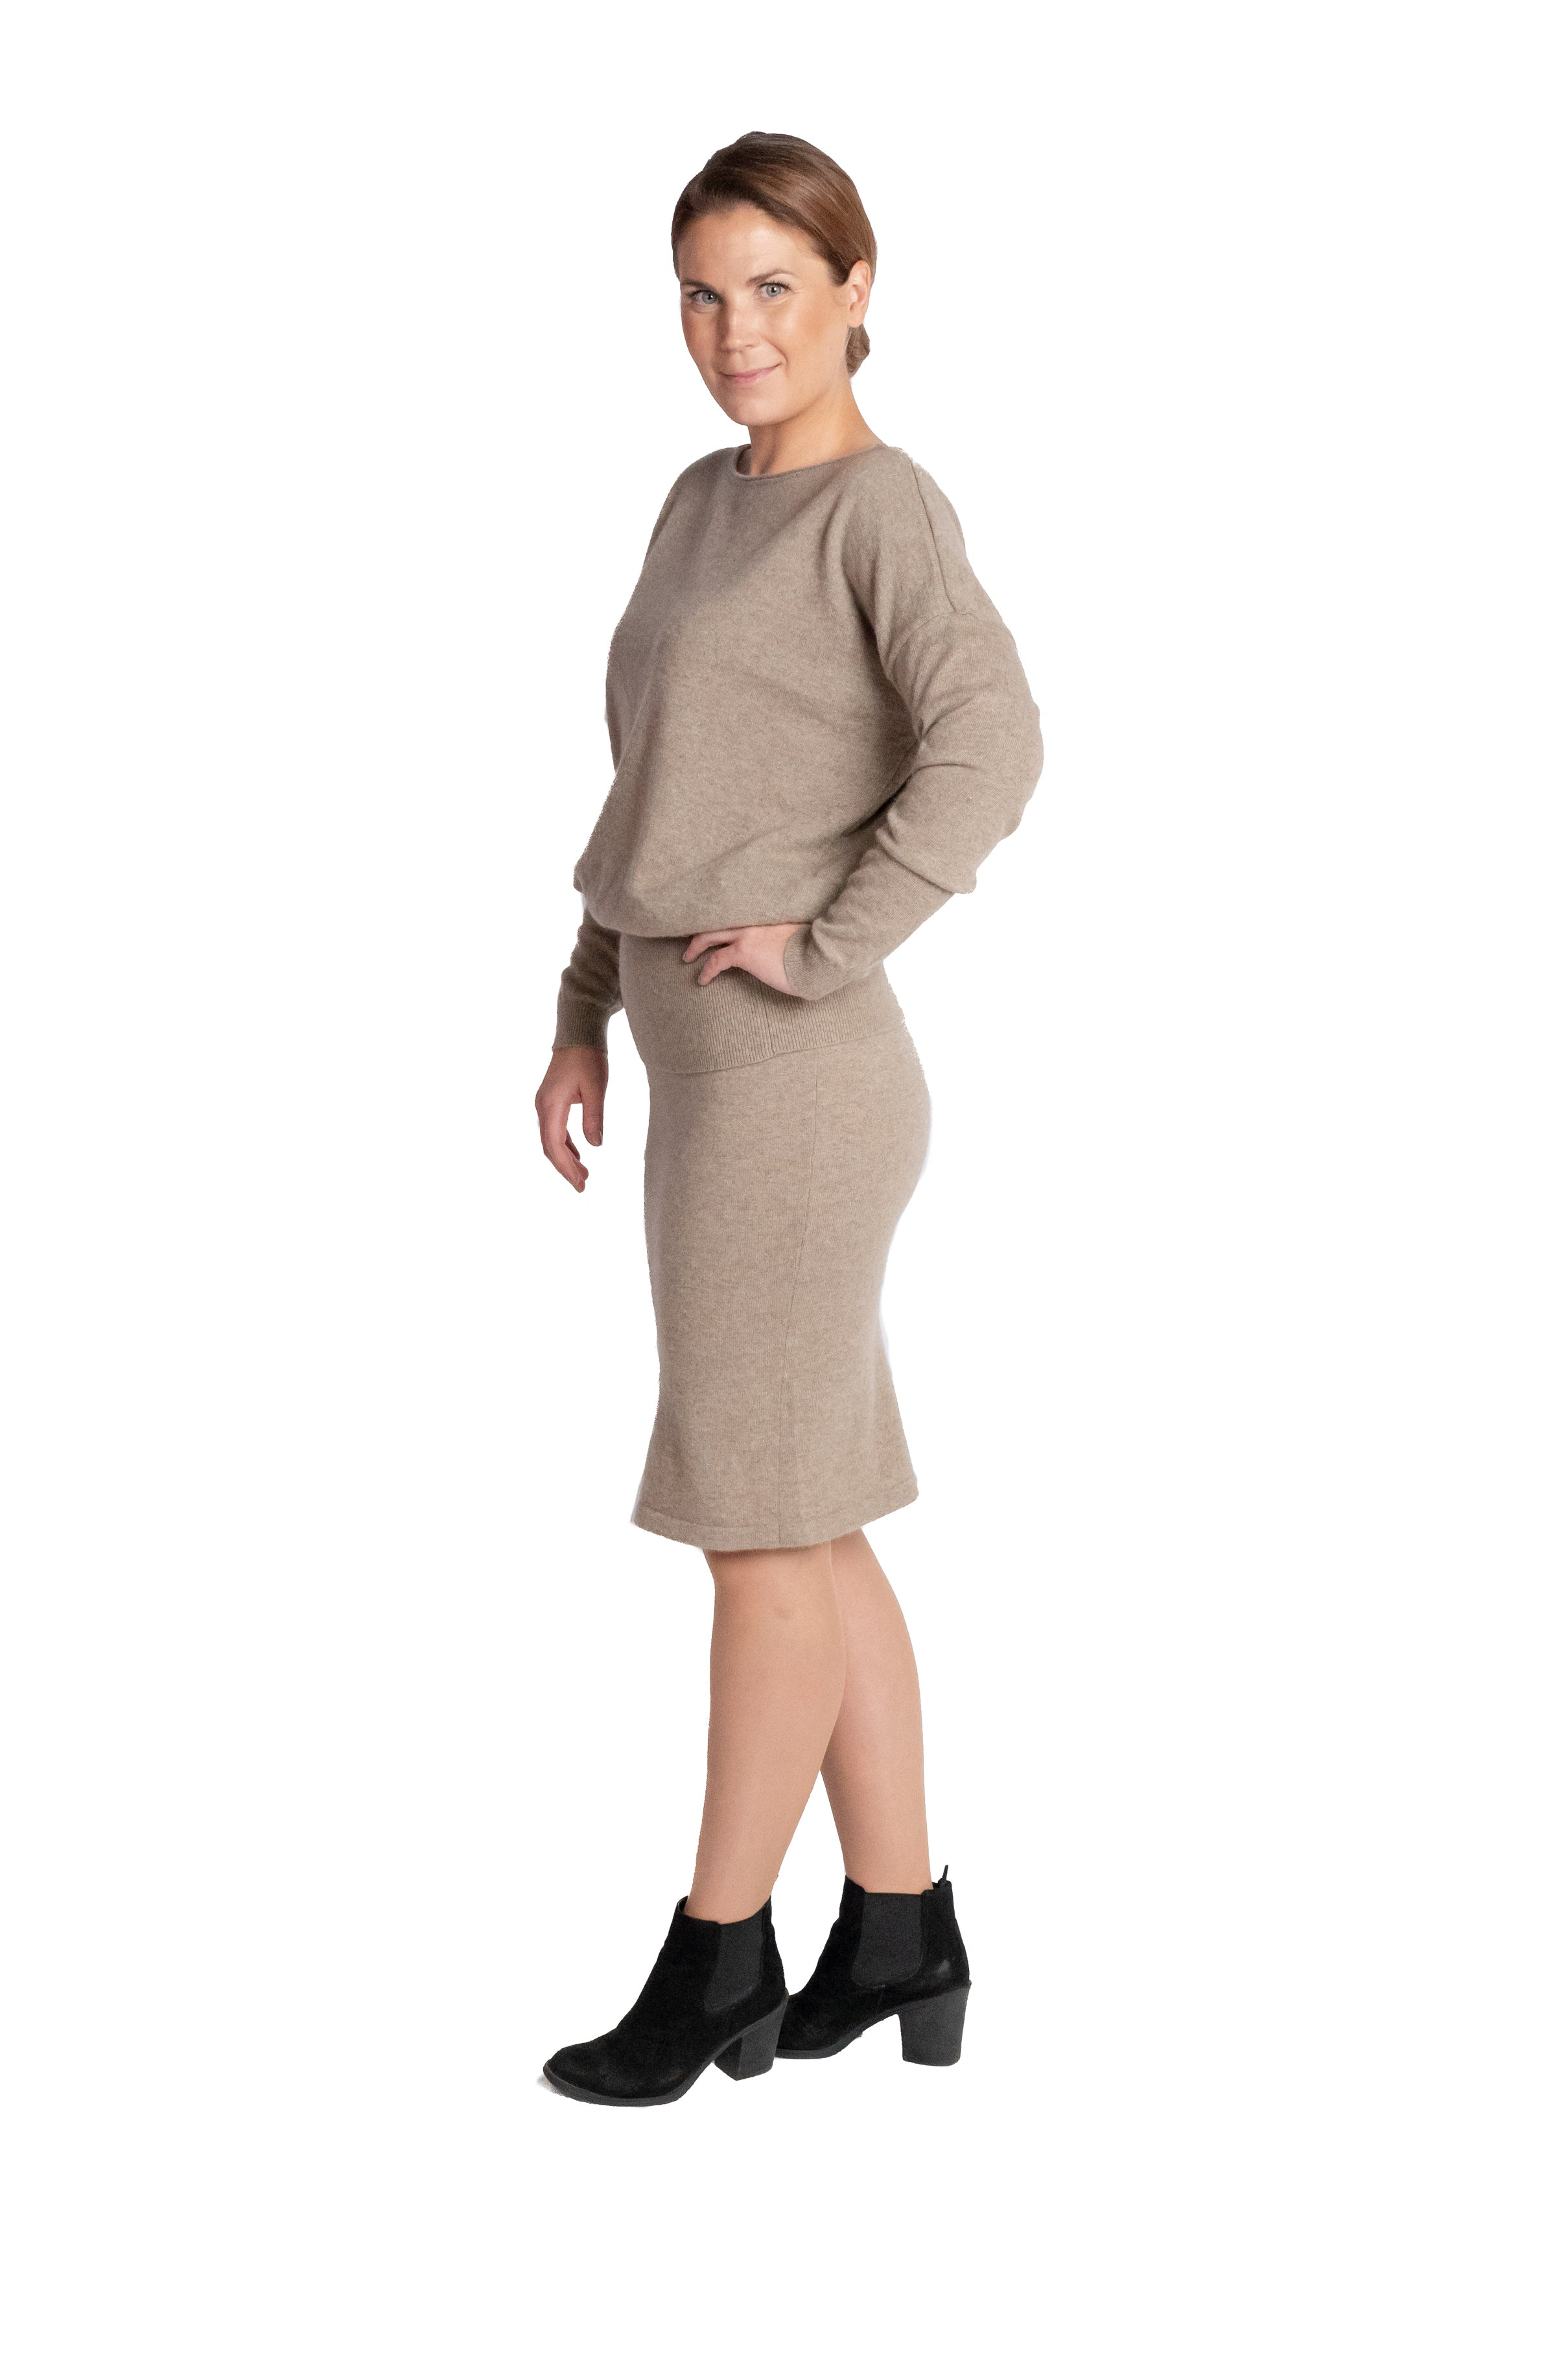 Inari Women's brown cashmere O-neck sweater - side - 100% high-quality cashmere - Inari-clothing.fi